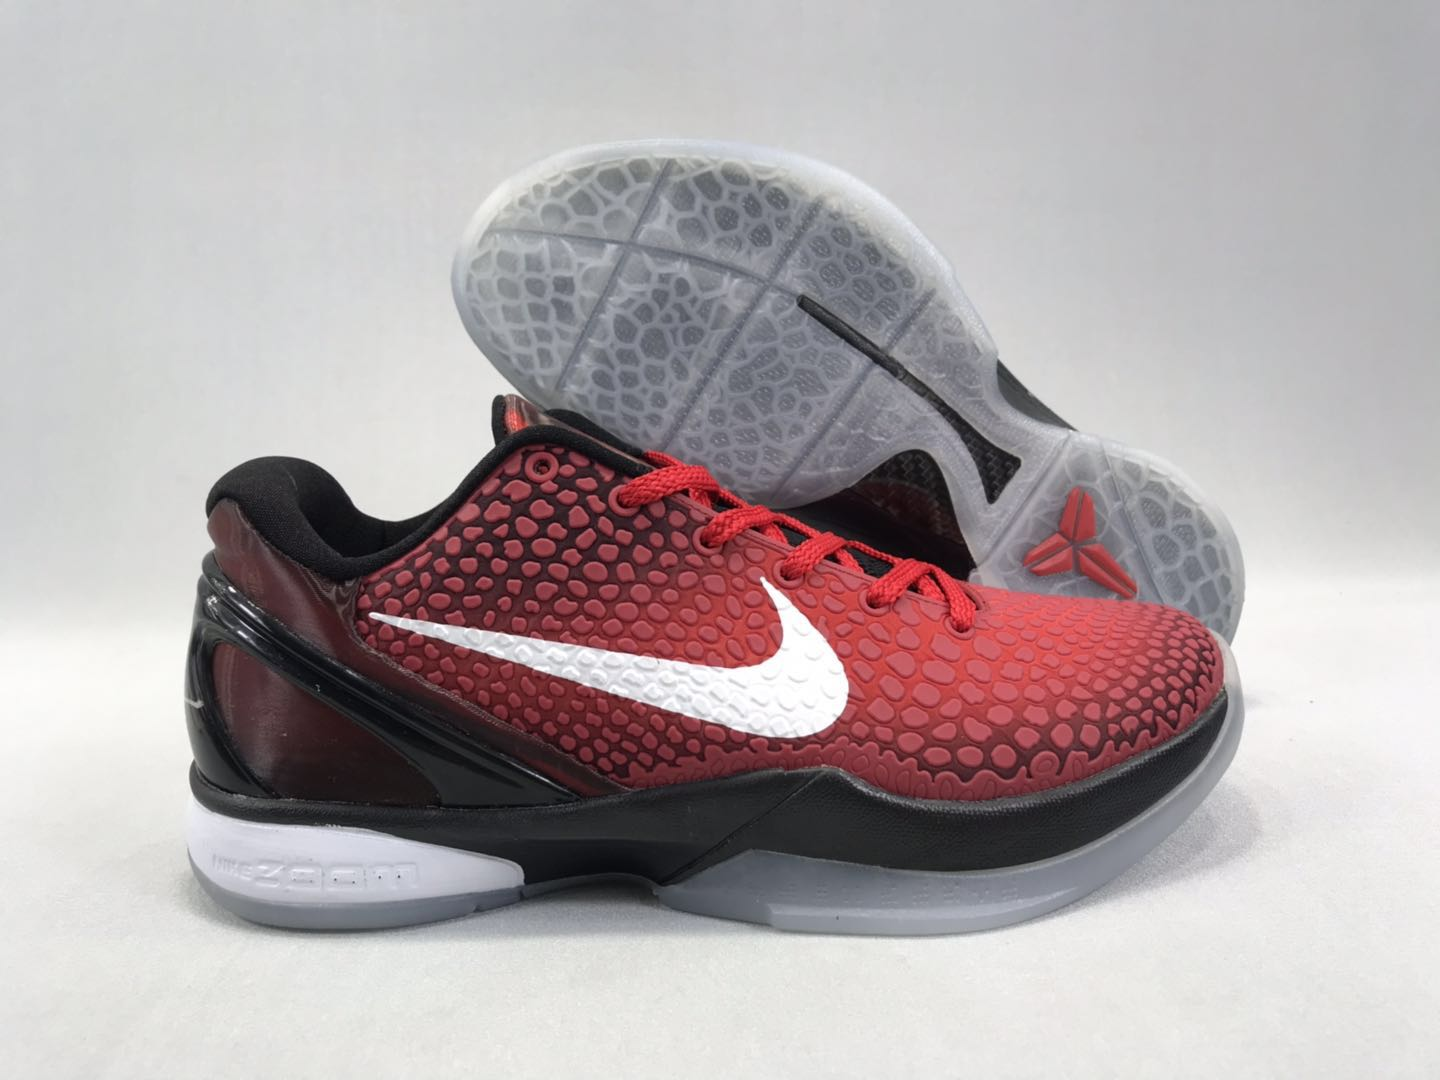 New-release Nike Kobe 8 All Star Red Black White Shoes